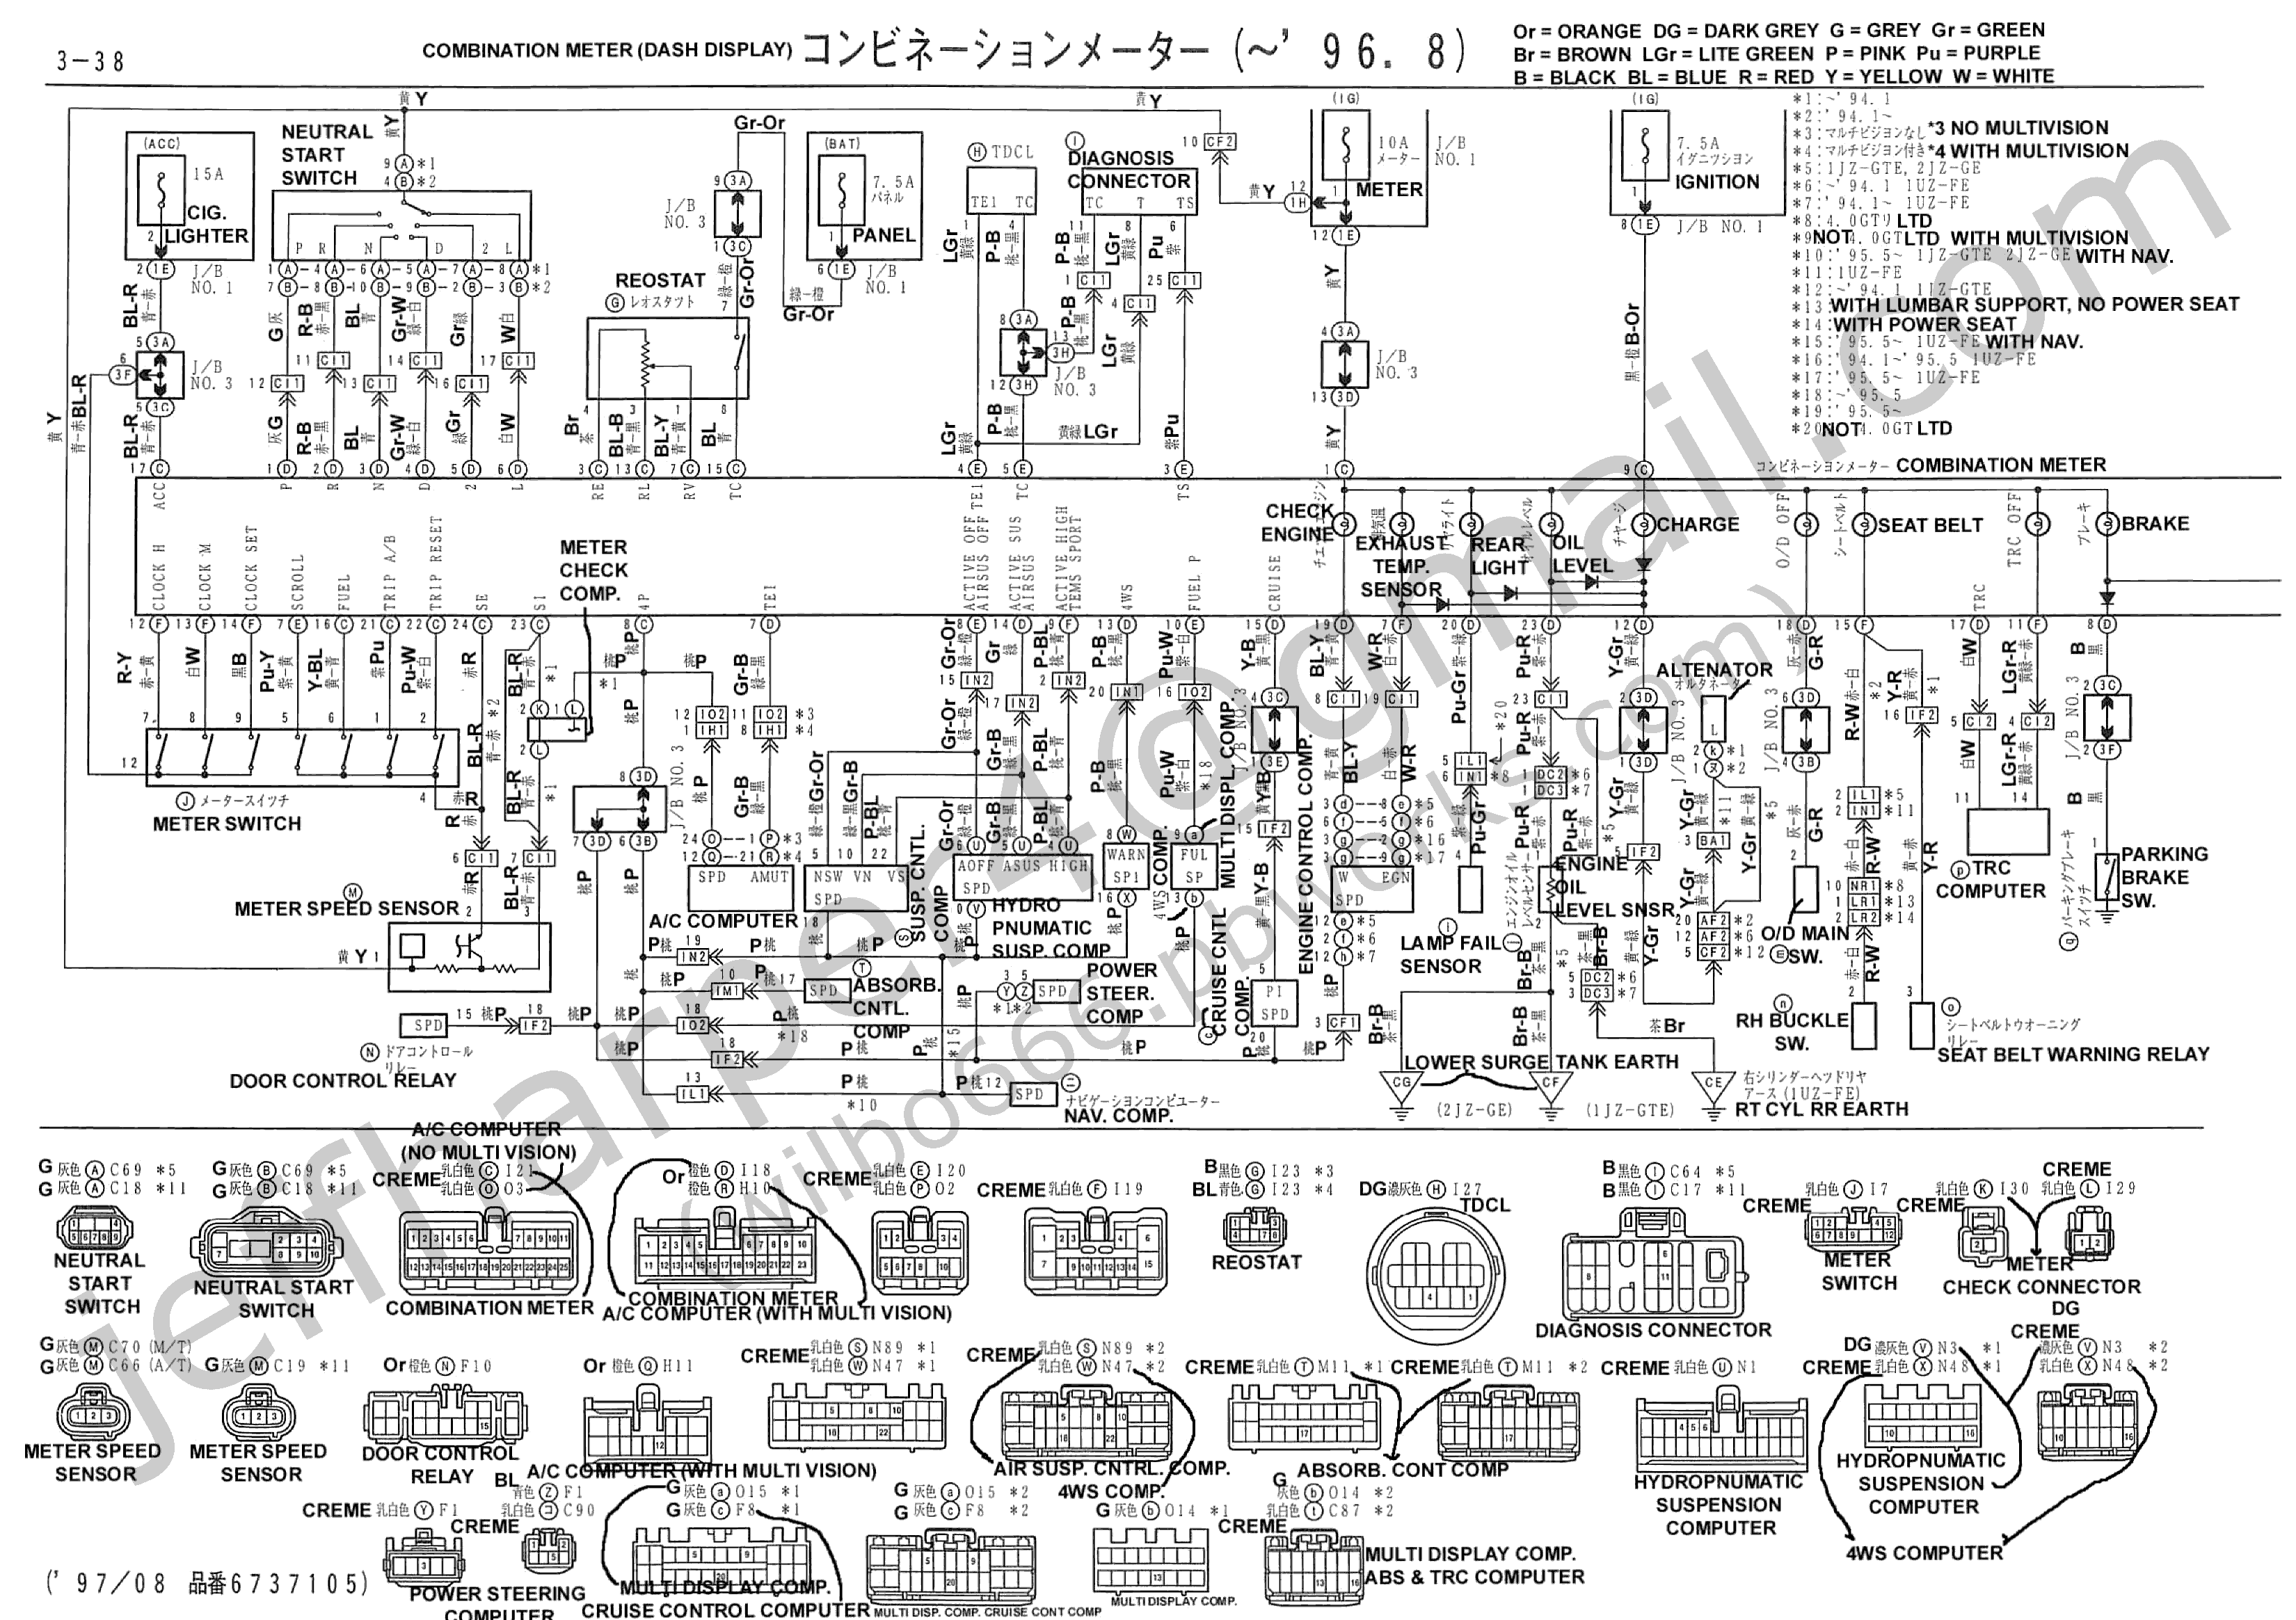 xZZ3x Electrical Wiring Diagram 6737105 3 38?resize\\\\\\\\\\\=665%2C469 2006 hummer h3 stereo wiring diagram wiring diagrams 2006 hummer h2 wiring diagram at soozxer.org